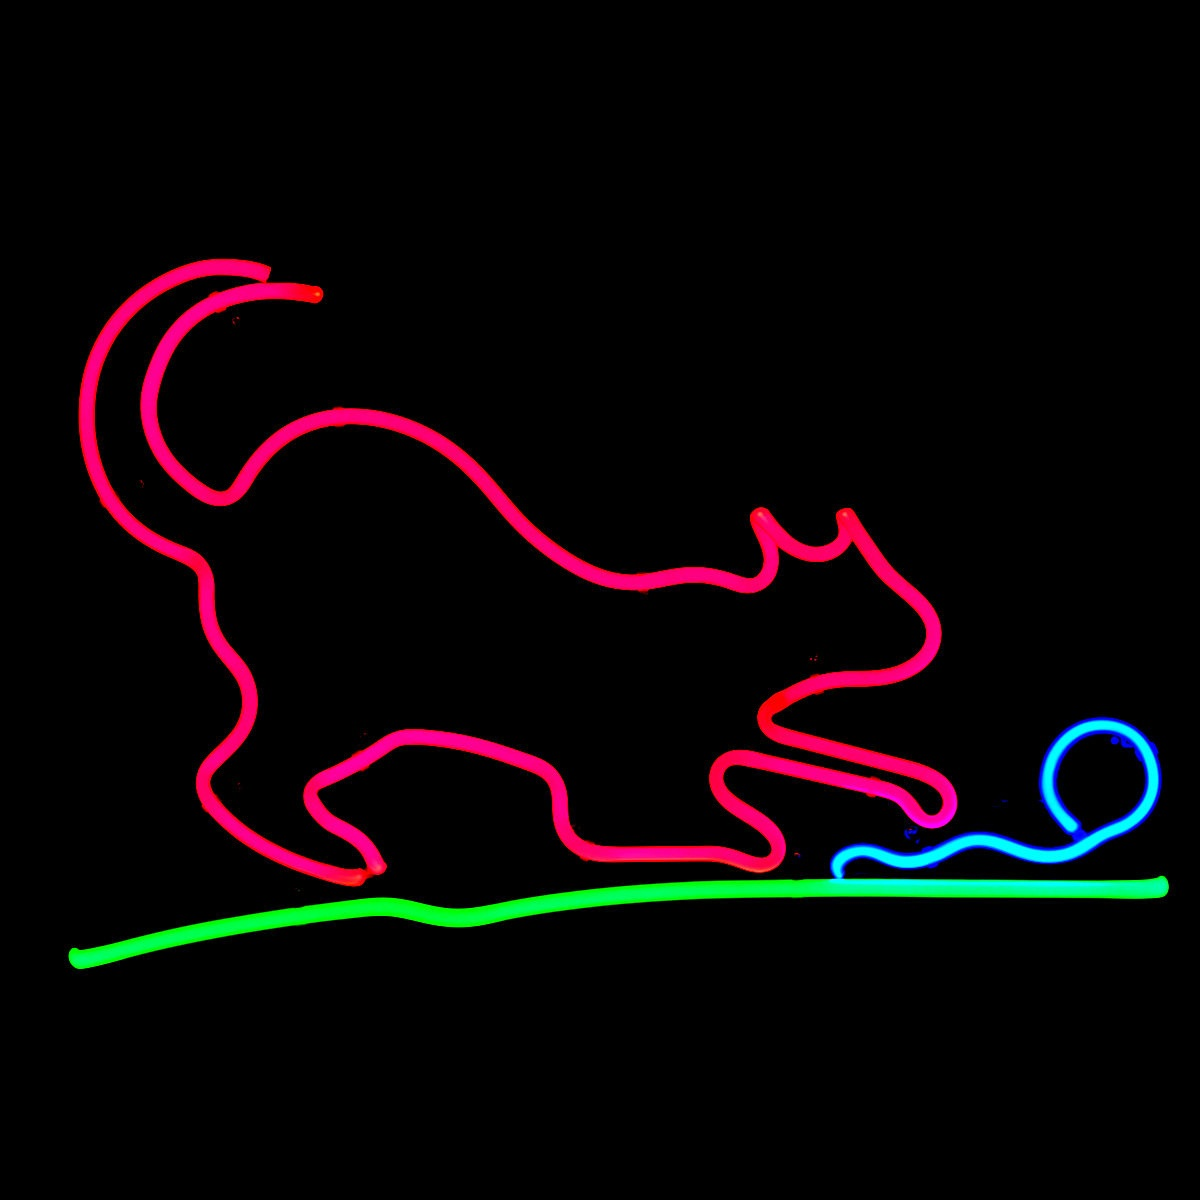 Cat Designer Neon Light Sculptures by John Barton - BartonNeonMagic.com